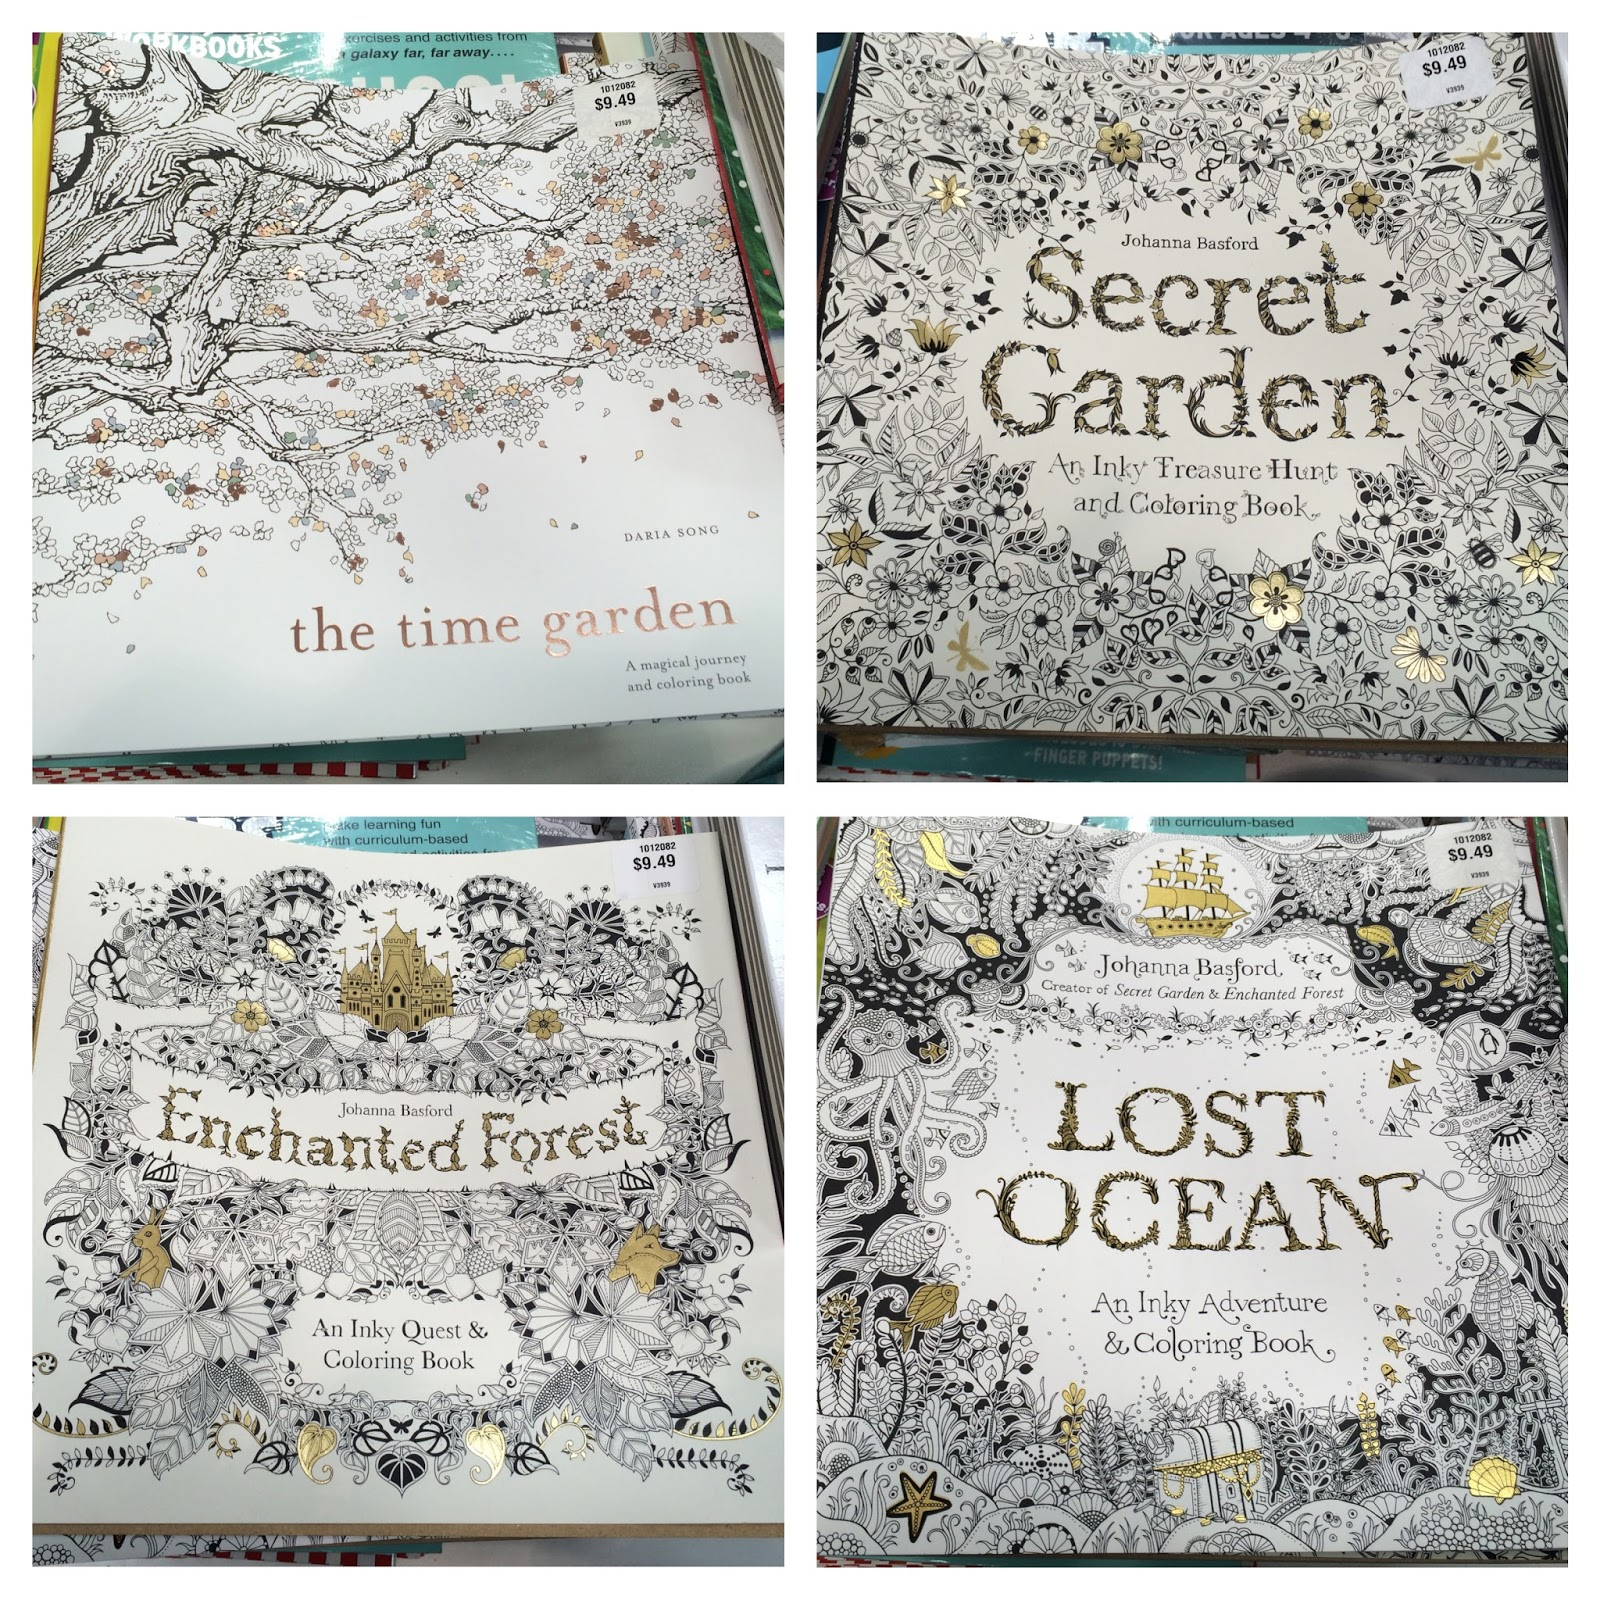 7 Enchanted Forest Coloring Book Costco